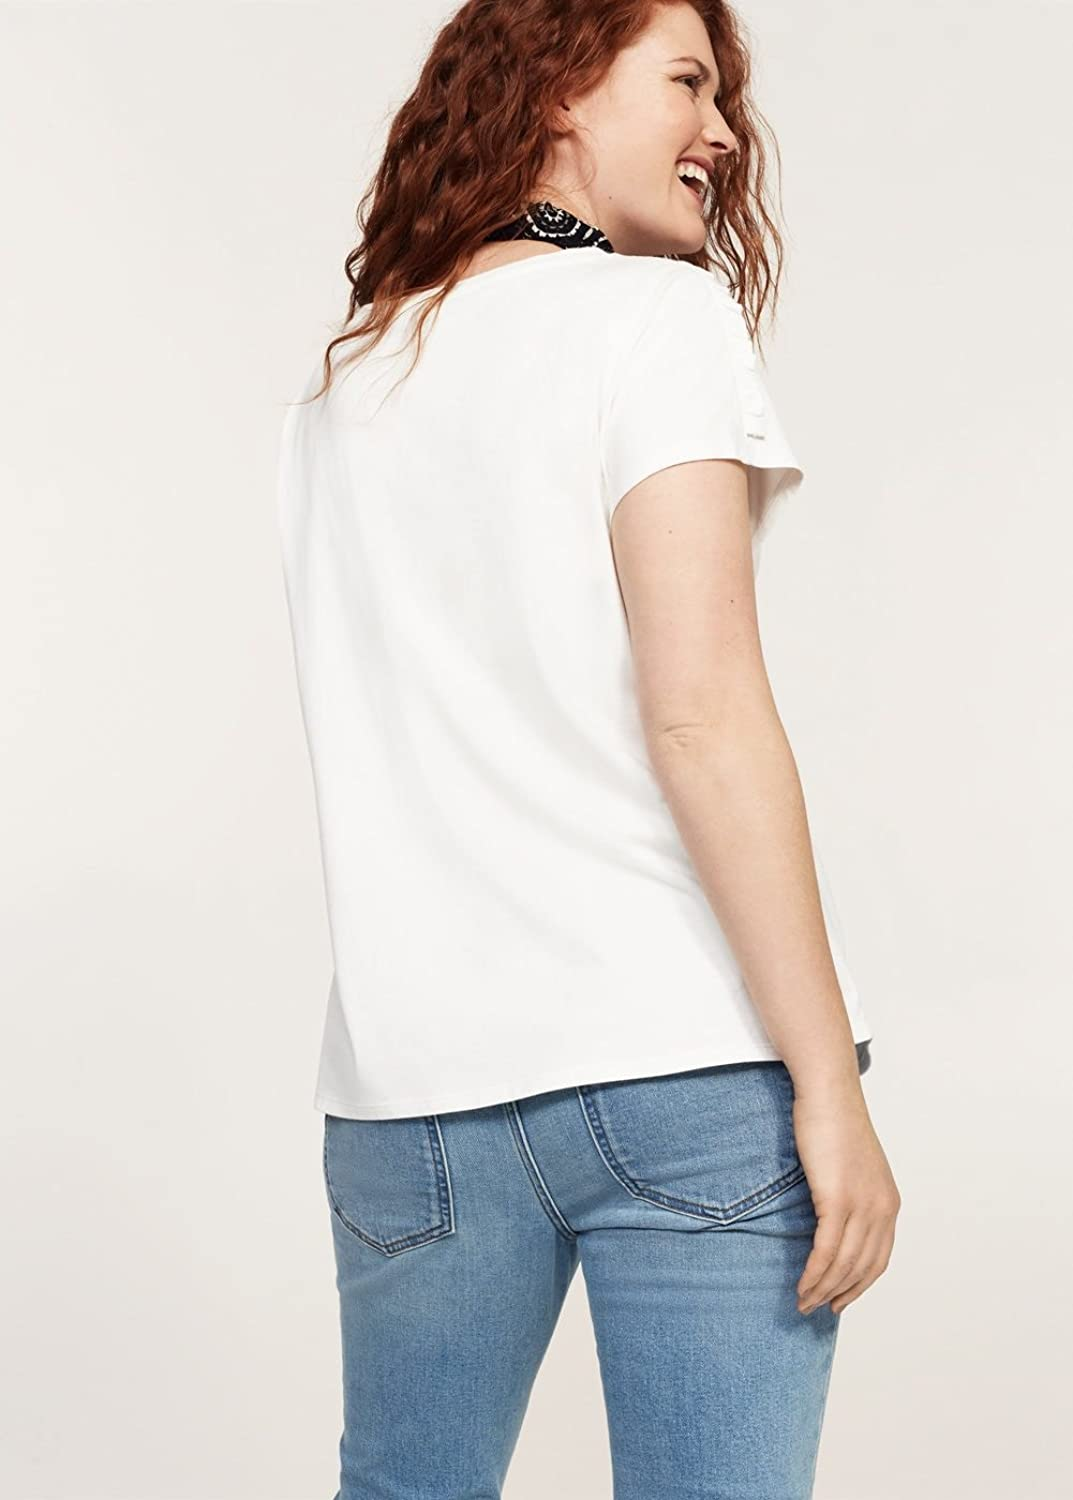 Violeta by MANGO Women's Plus Size Ruched Detail T-Shirt at Amazon Women's  Clothing store: